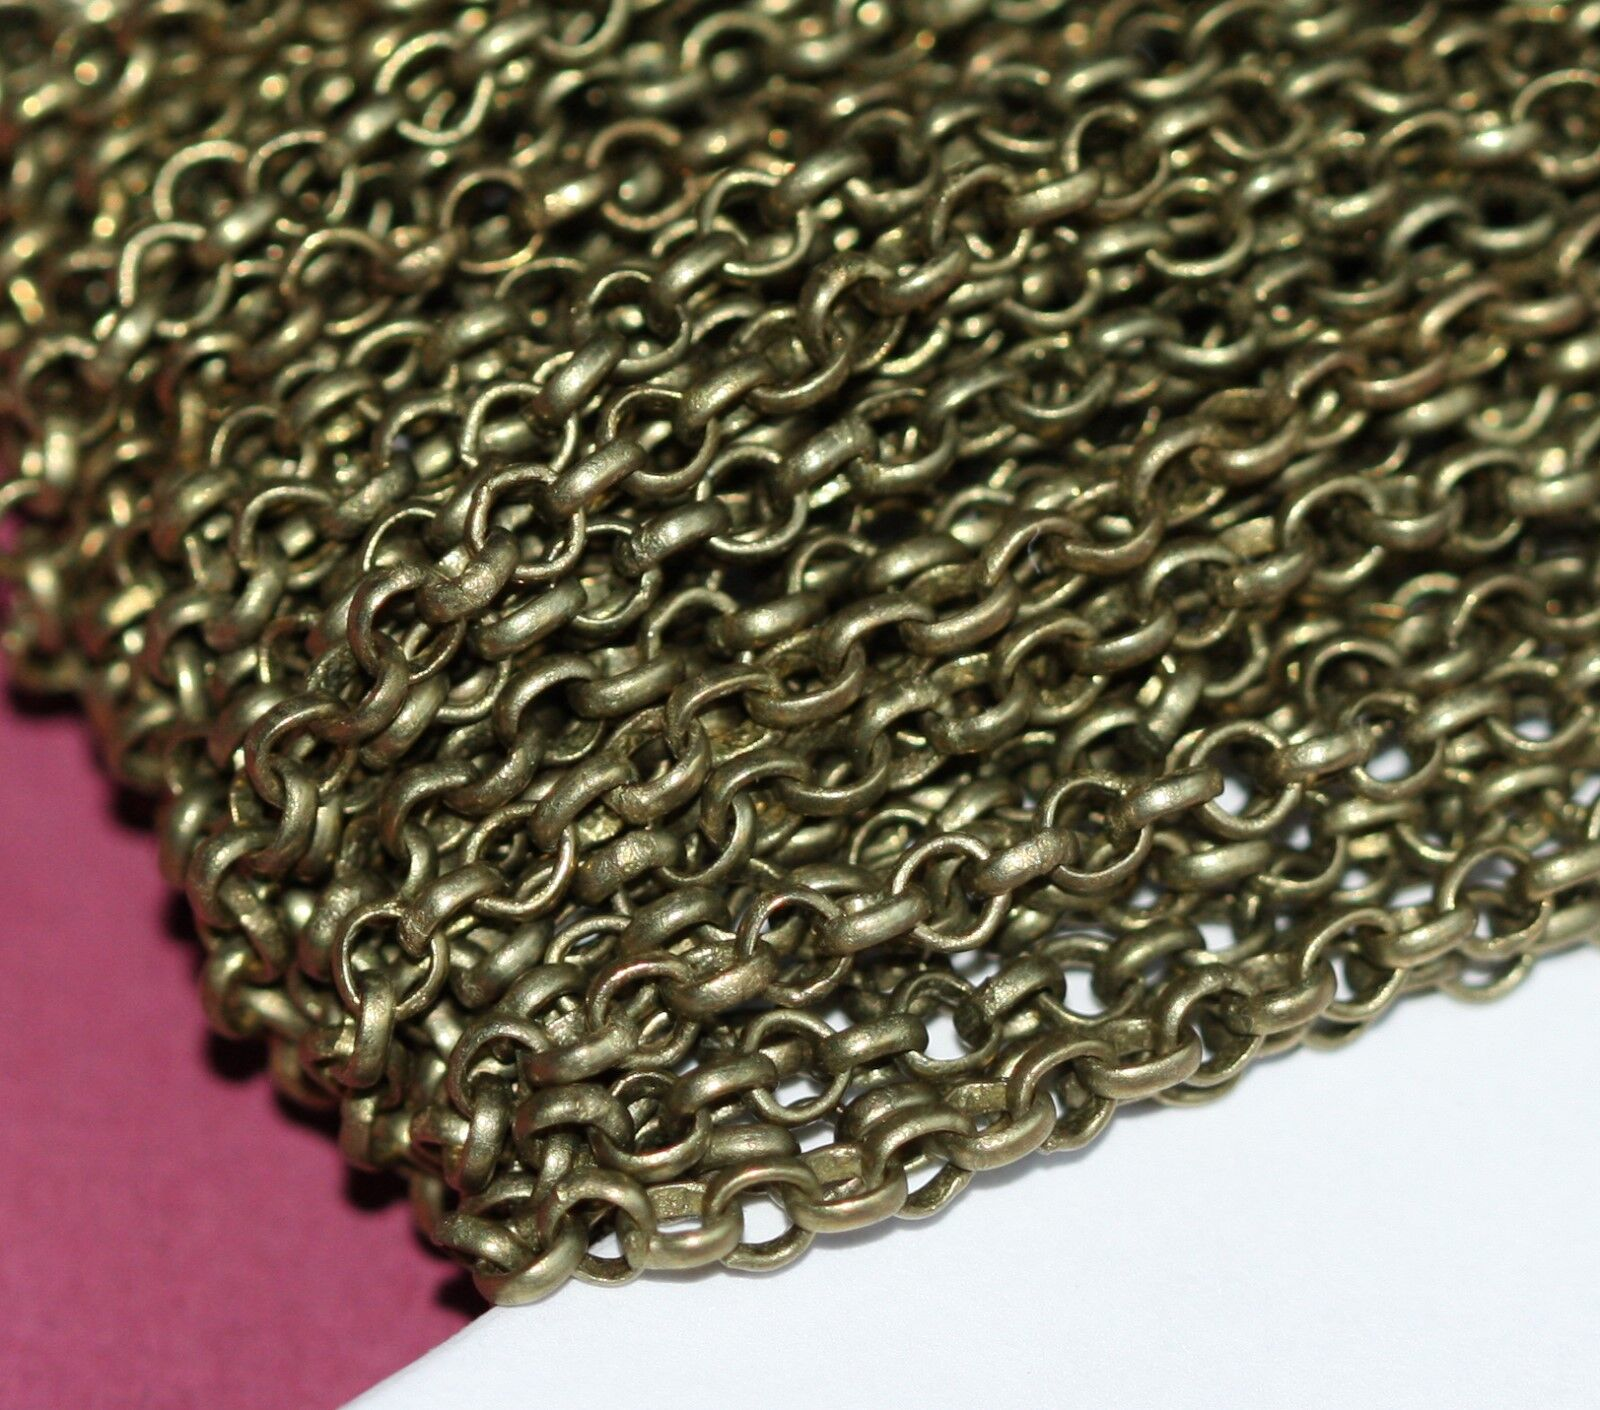 5ft of brass coated iron chain rollo chain 3.1mm available in 6 colors